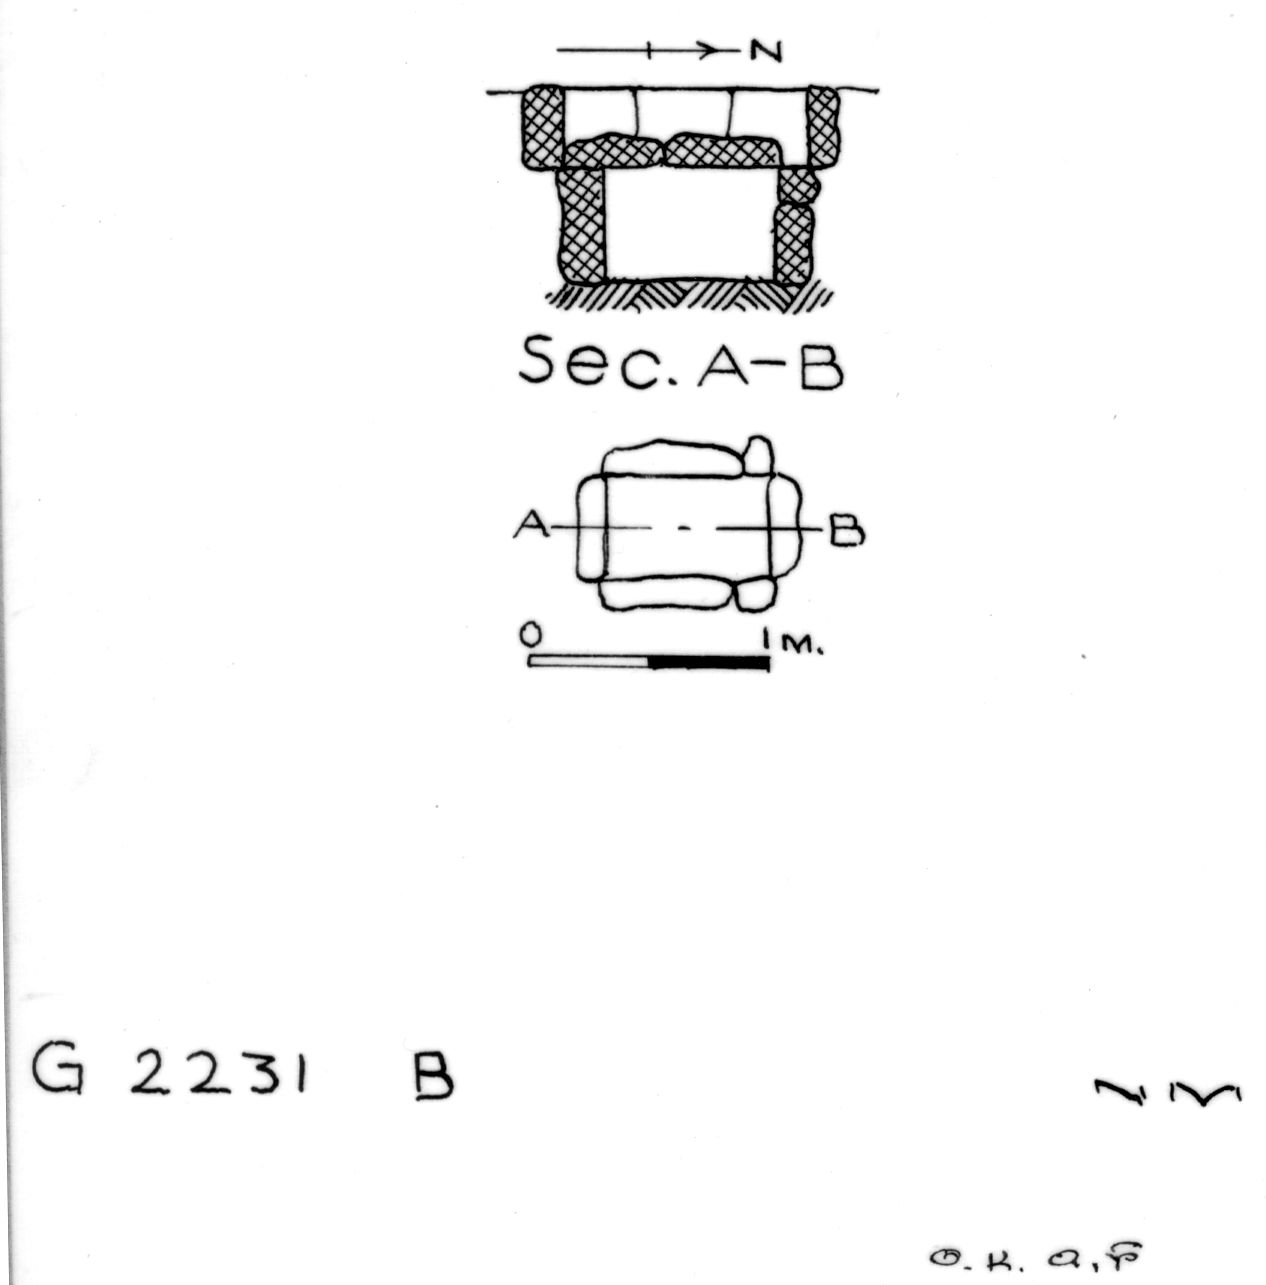 Maps and plans: G 2230+2231: G 2231, Shaft B